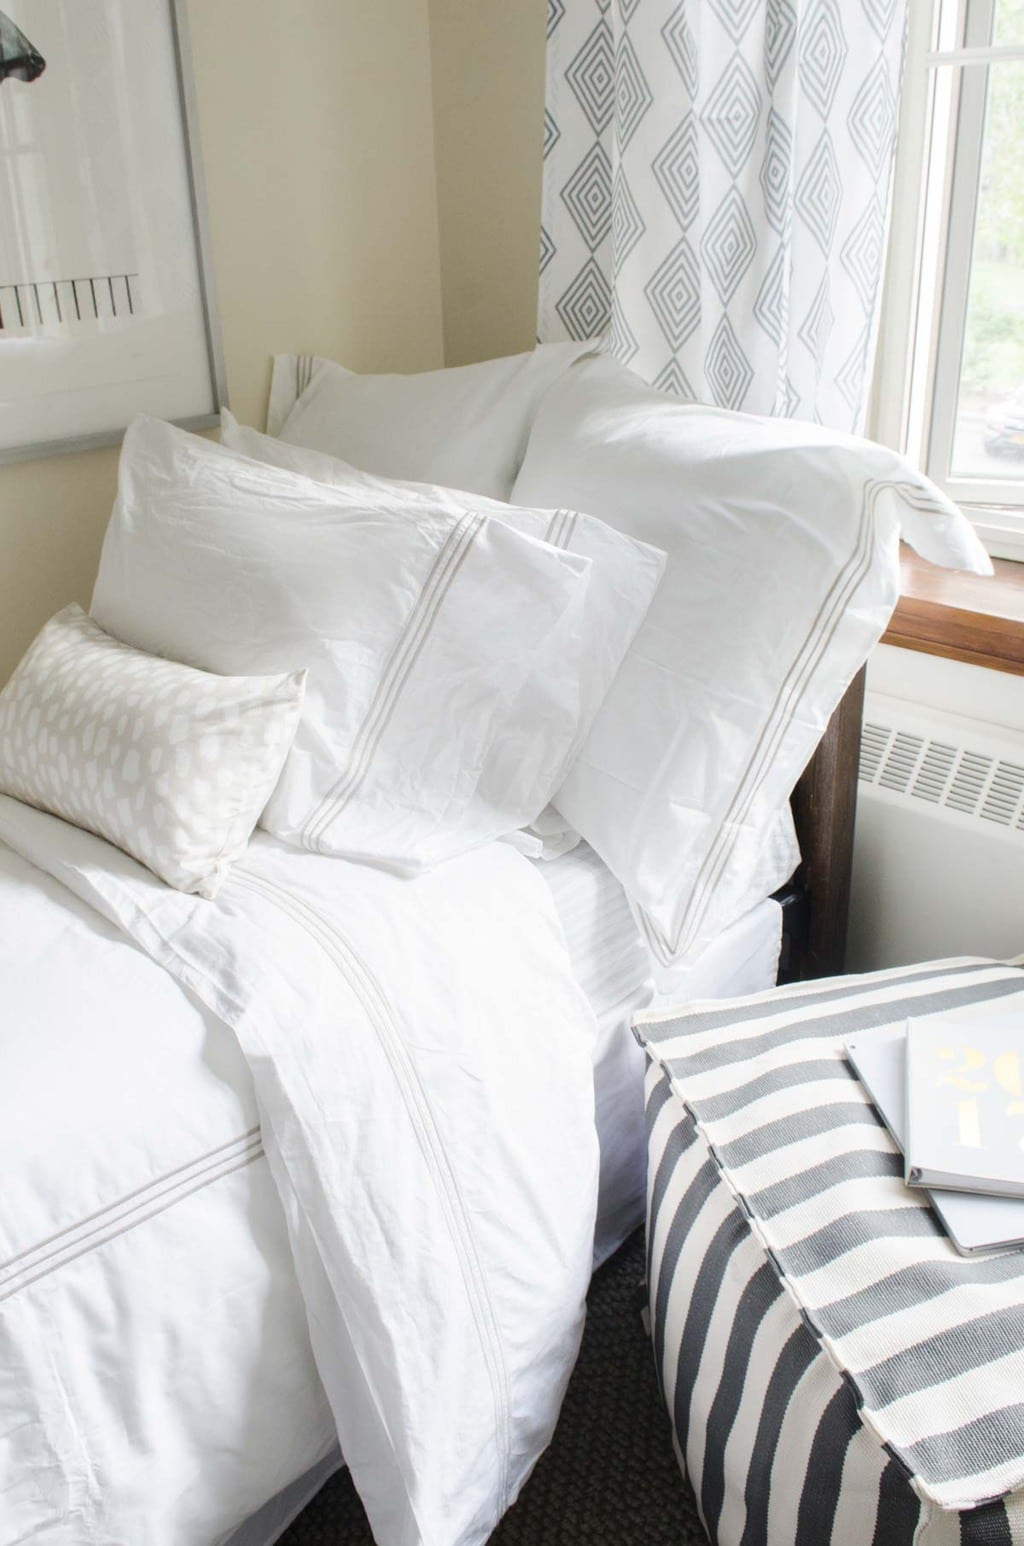 Dorm room decor essentials with bedding, pouf, art prints via @thouswellblog